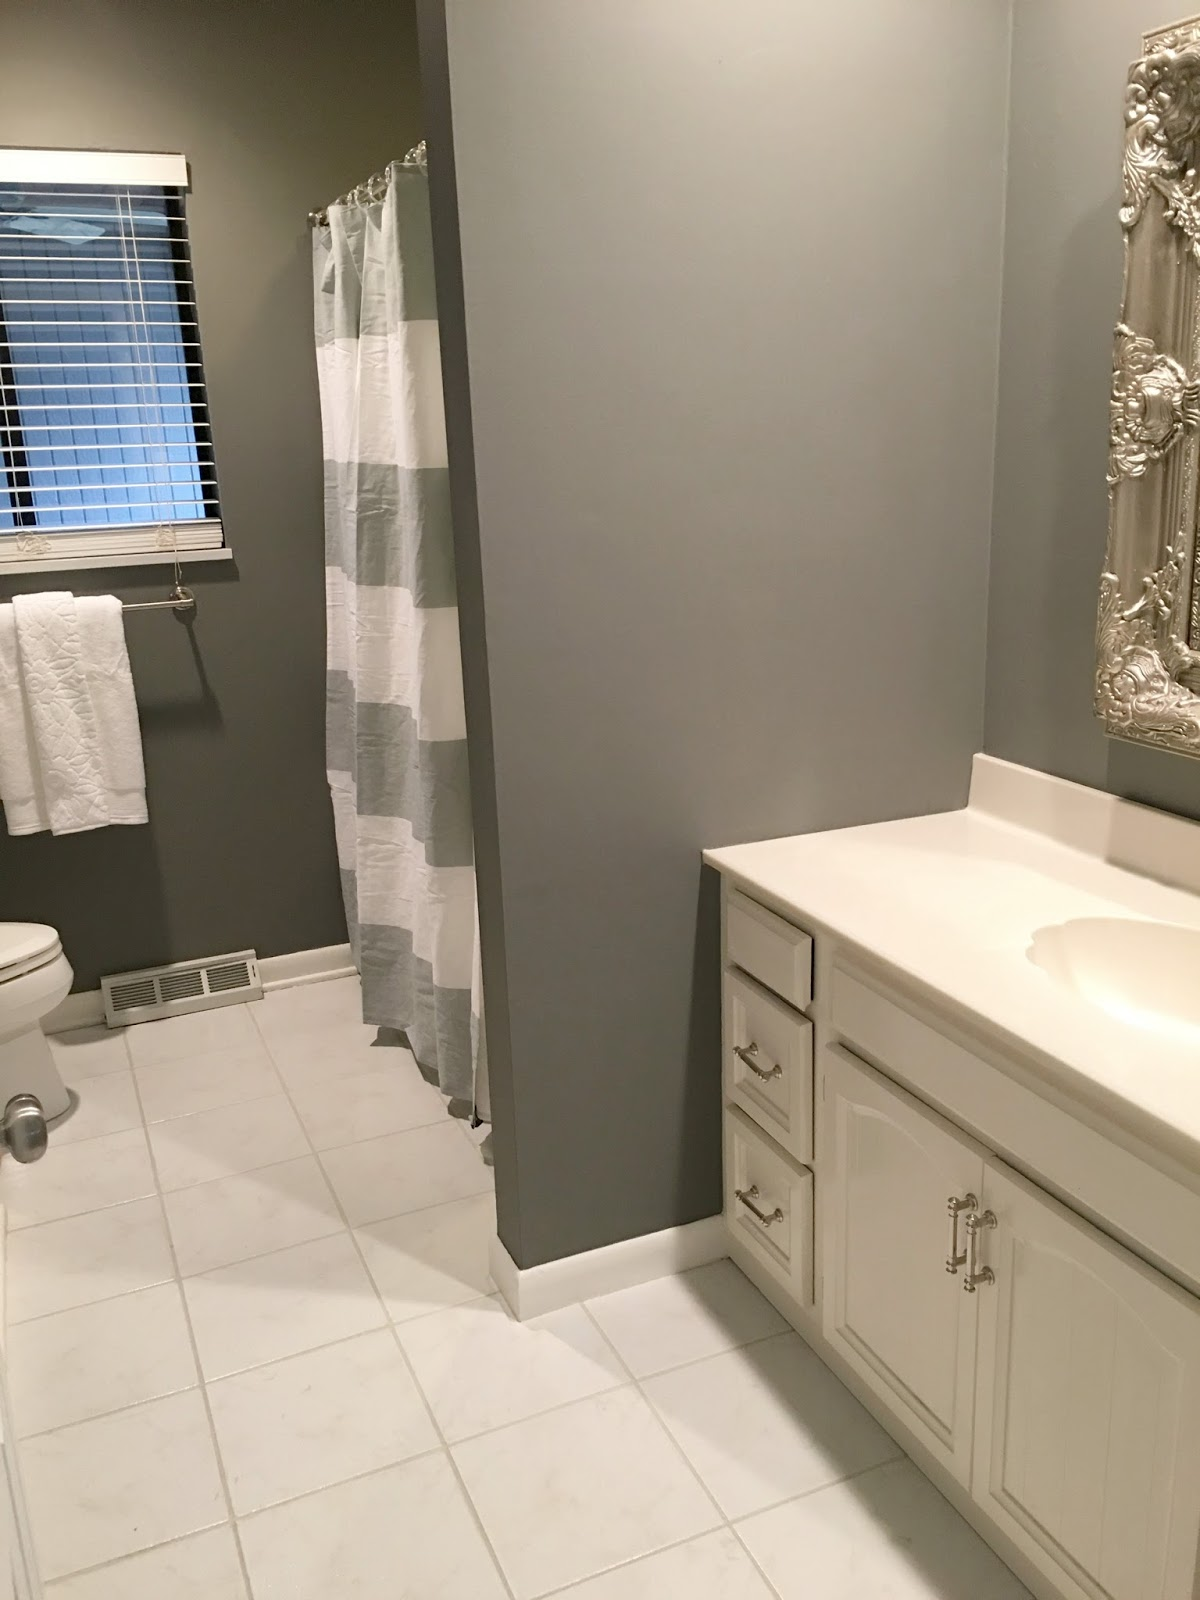 Good DIY Bathroom Remodel on a Budget